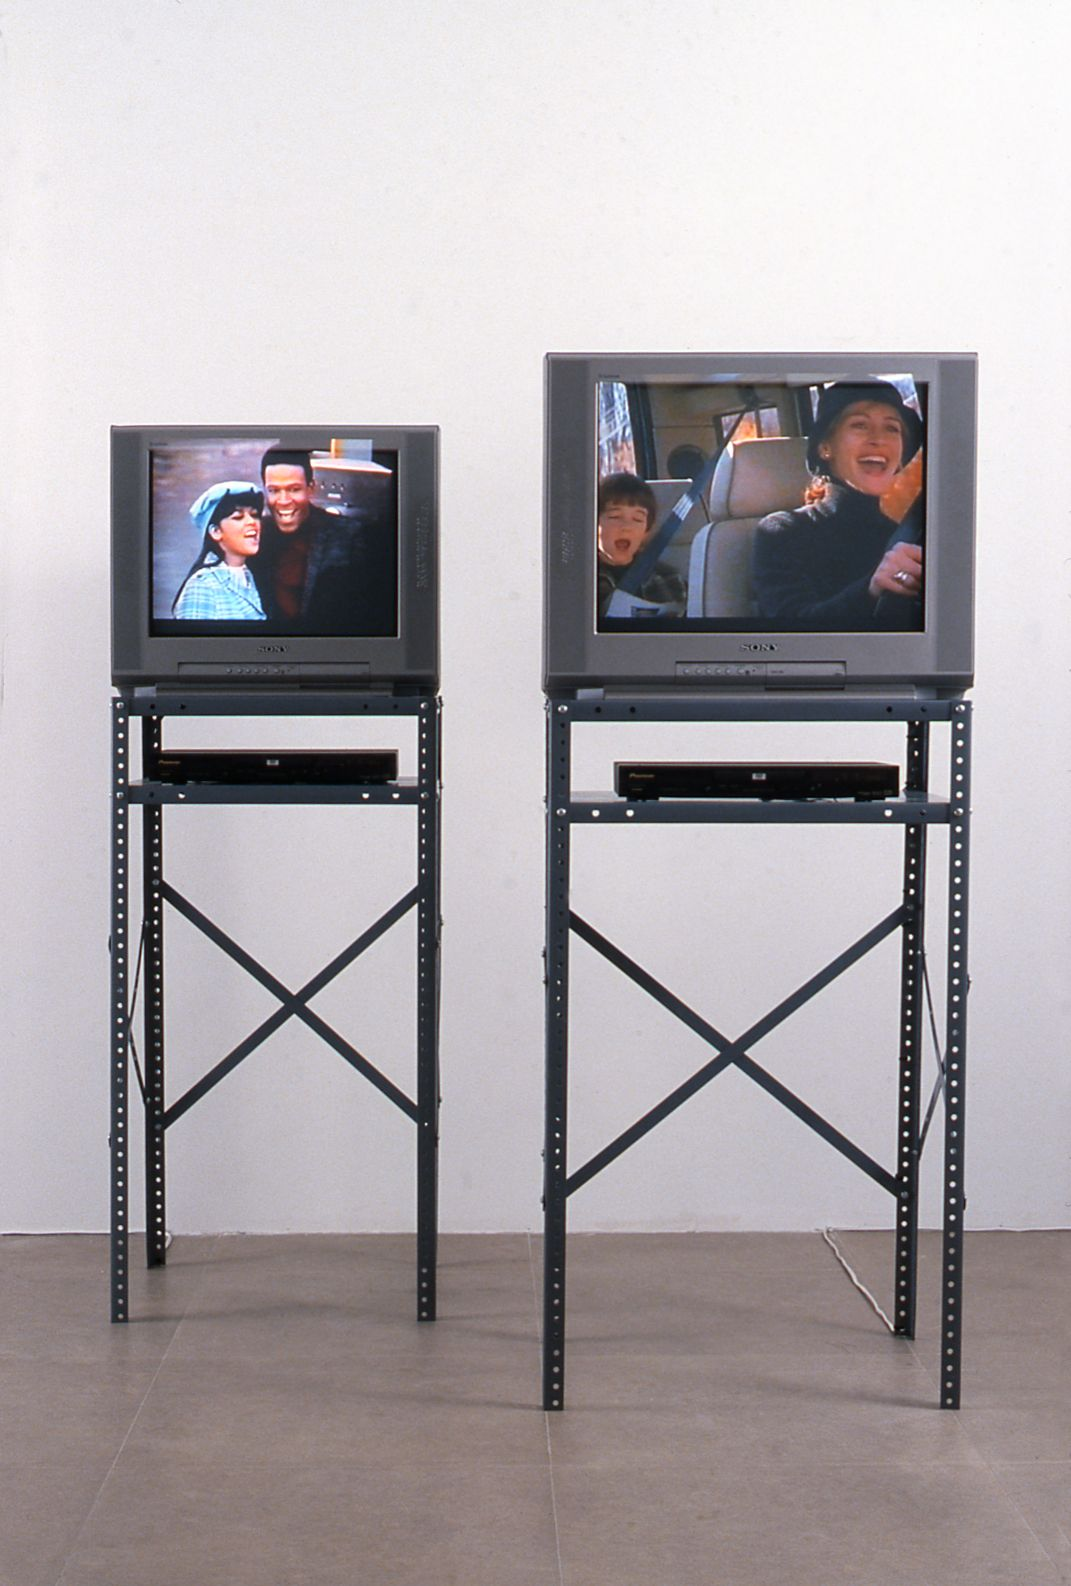 """The Soul of Tammi Terrell, 2001, 2 DVDs 5:30 min each, 2 metal stands, 24"""" monitor, 20"""" monitor, 2 DVD players"""